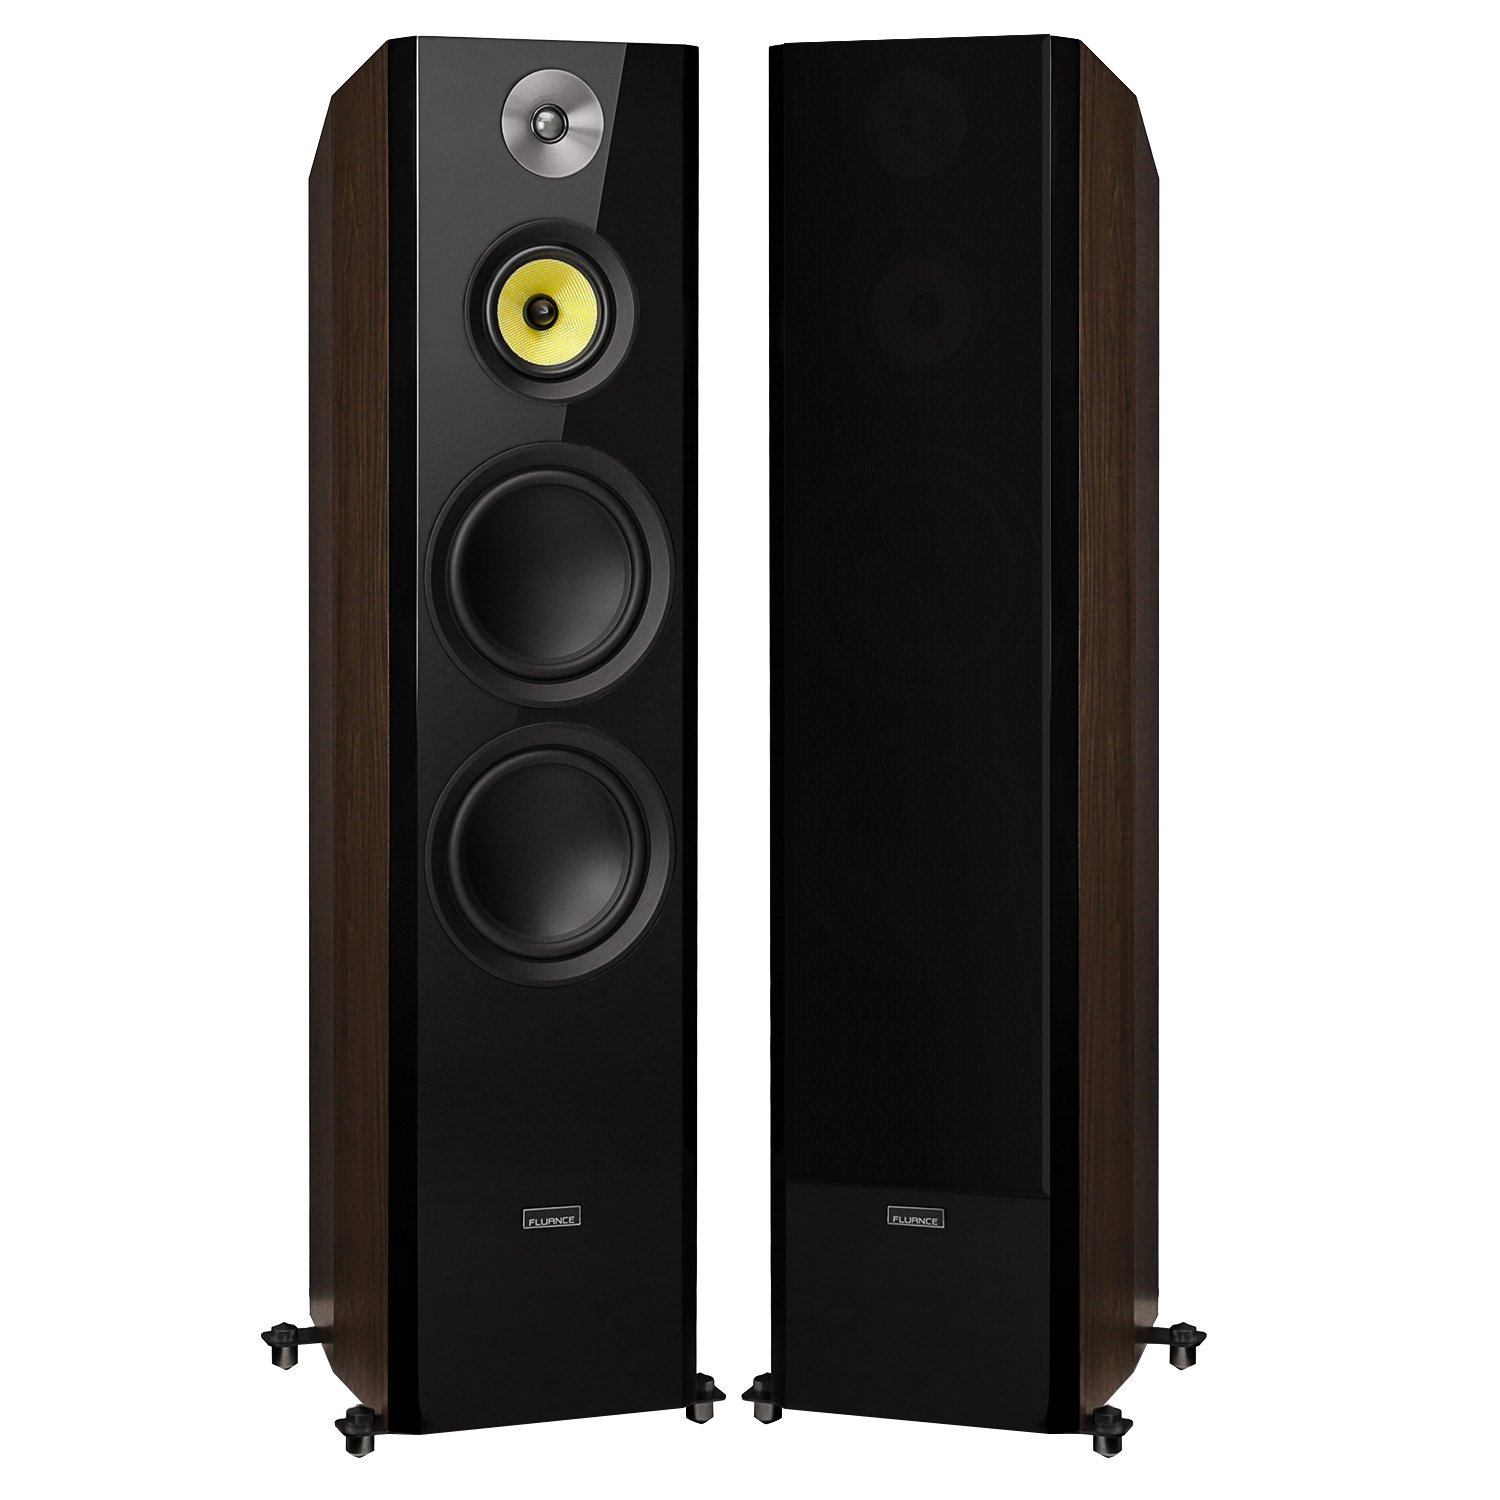 Fluance Signature Series Hi-Fi Three-way Floorstanding Tower Speakers with Dual 8'' Woofers (HFFW) Natural Walnut